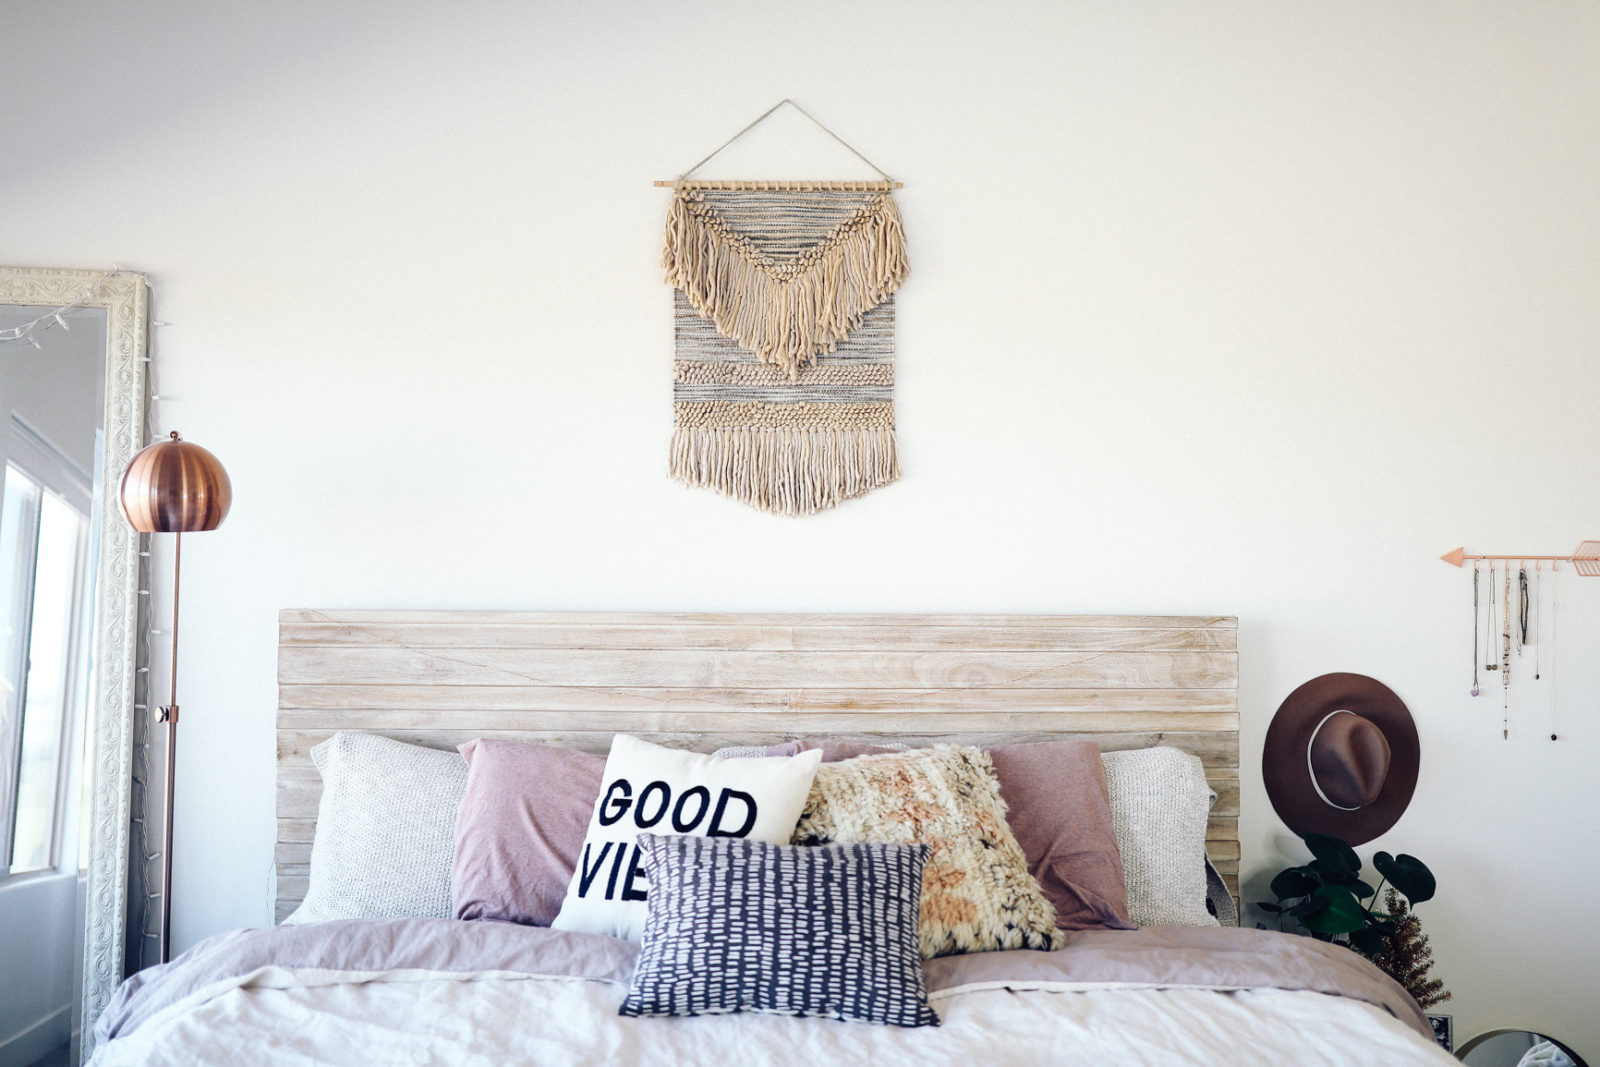 Urban decor ideas new winter room makeover ft urban outfitters Urban home decor